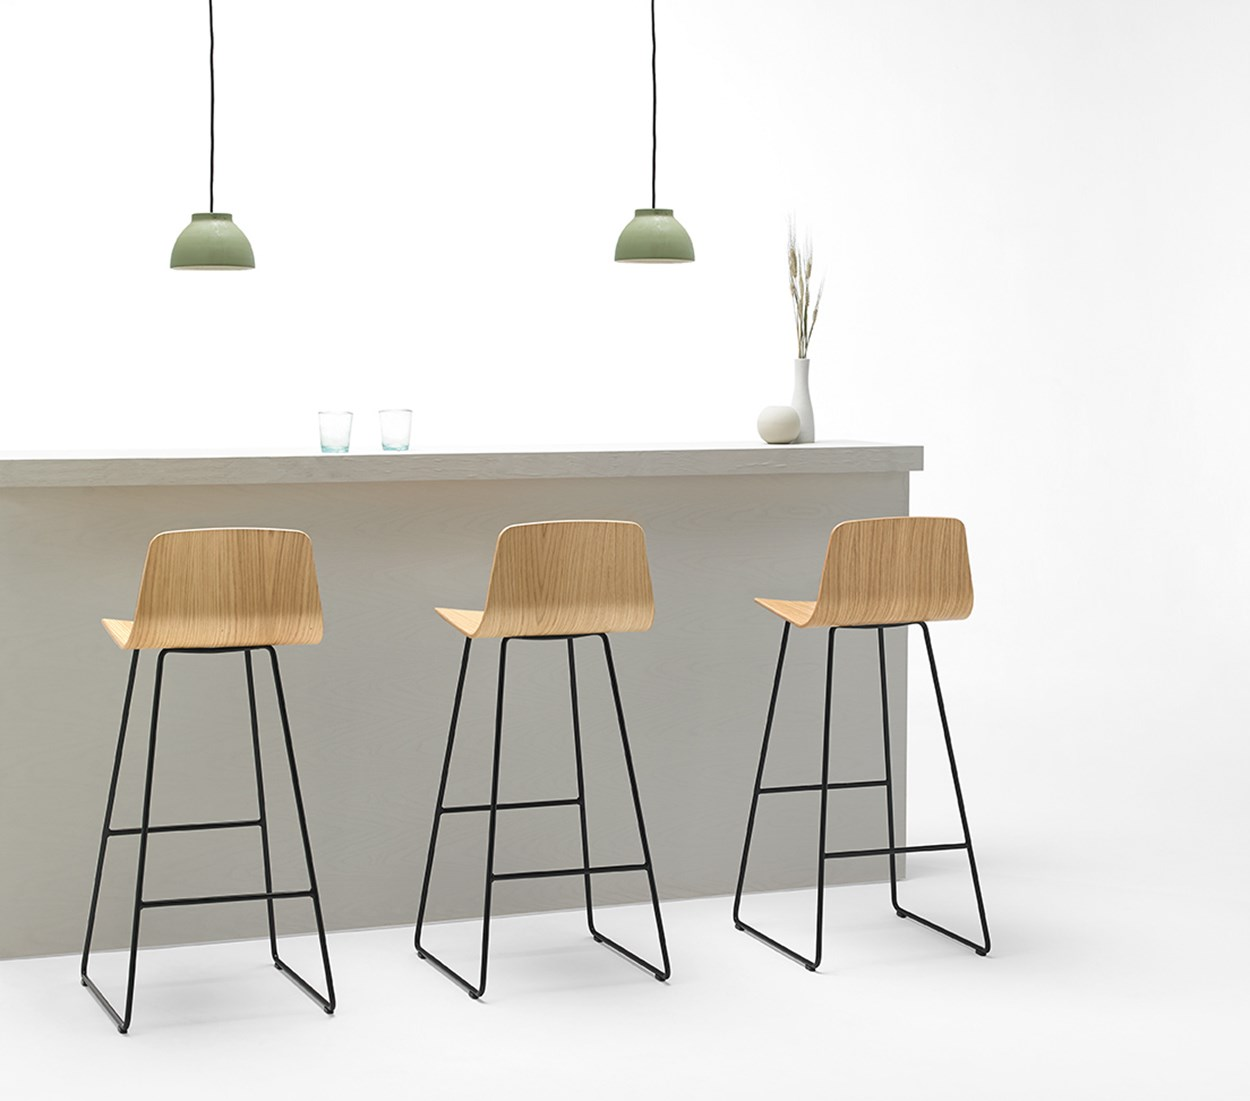 inclass-varya-wood-stools.jpg